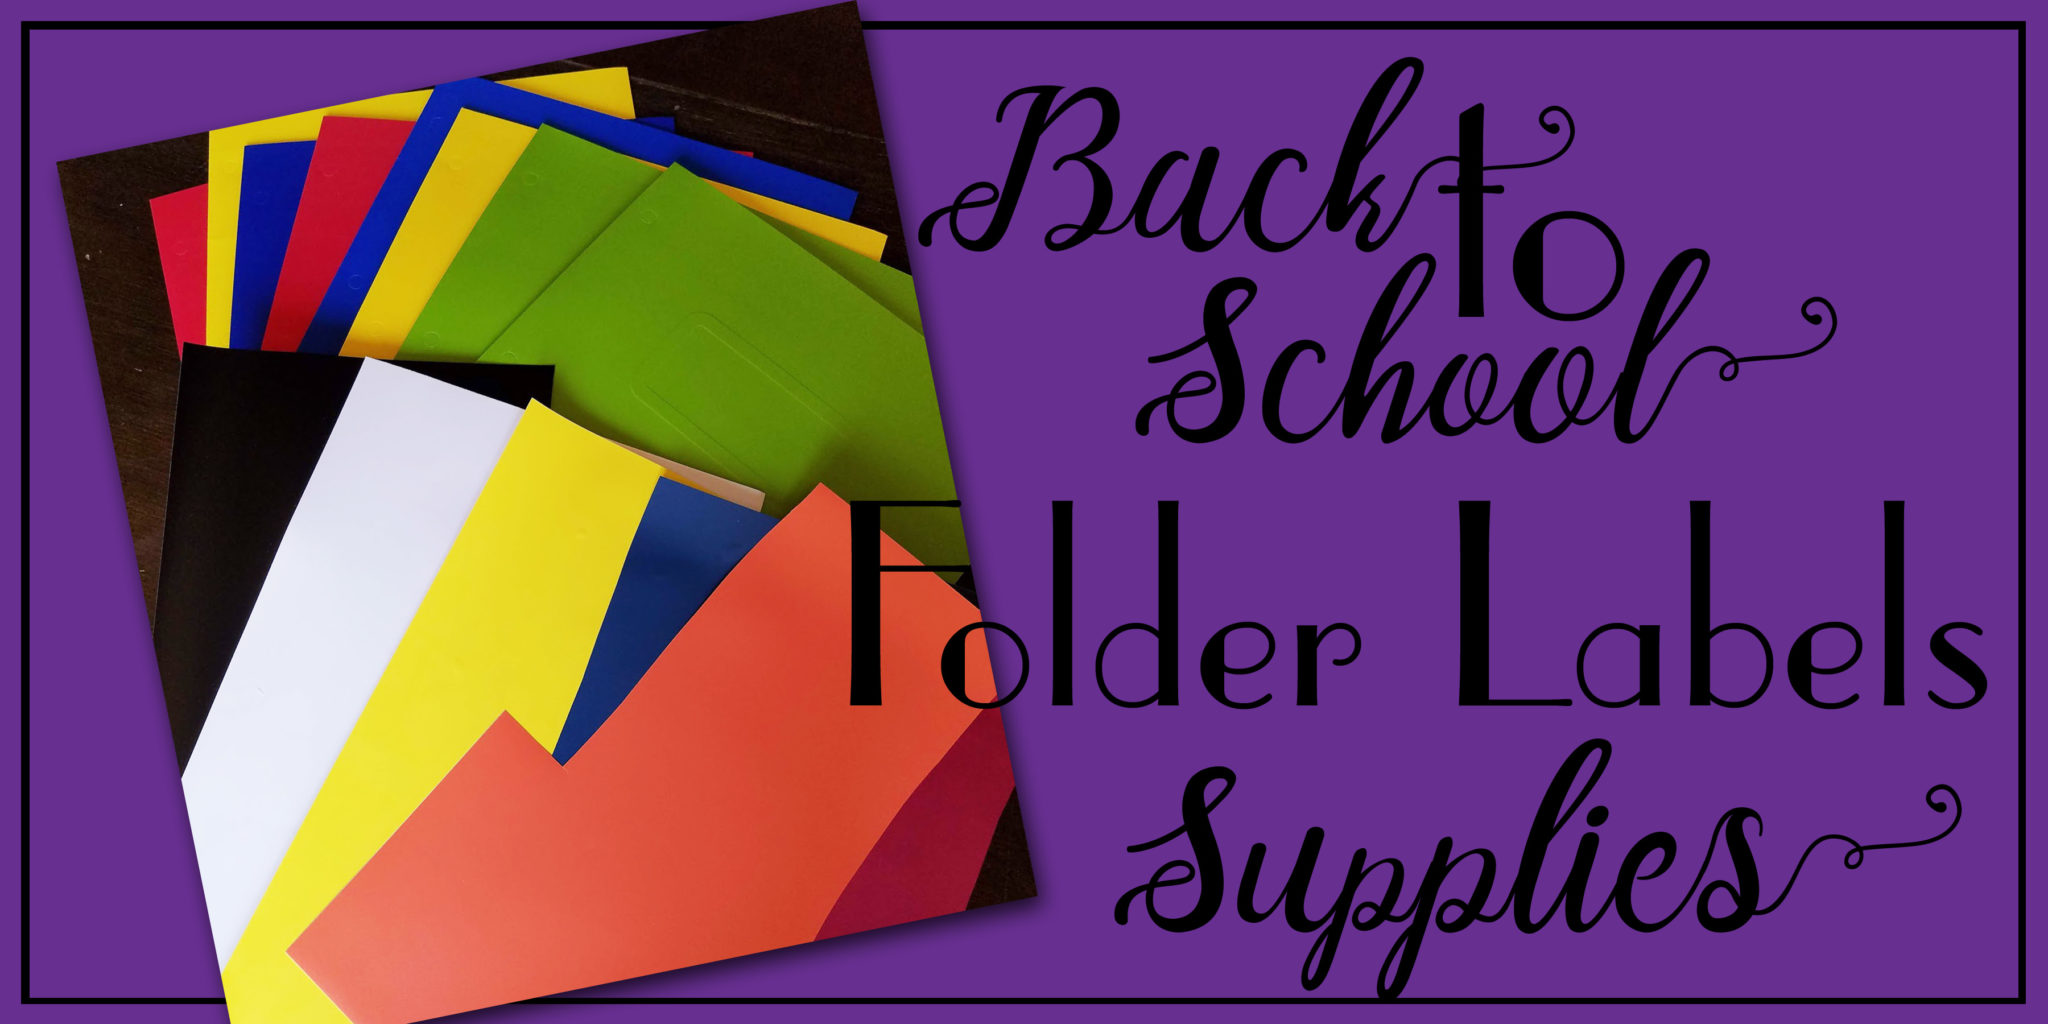 Back To School Folder Labels Diy Things Small And Simple